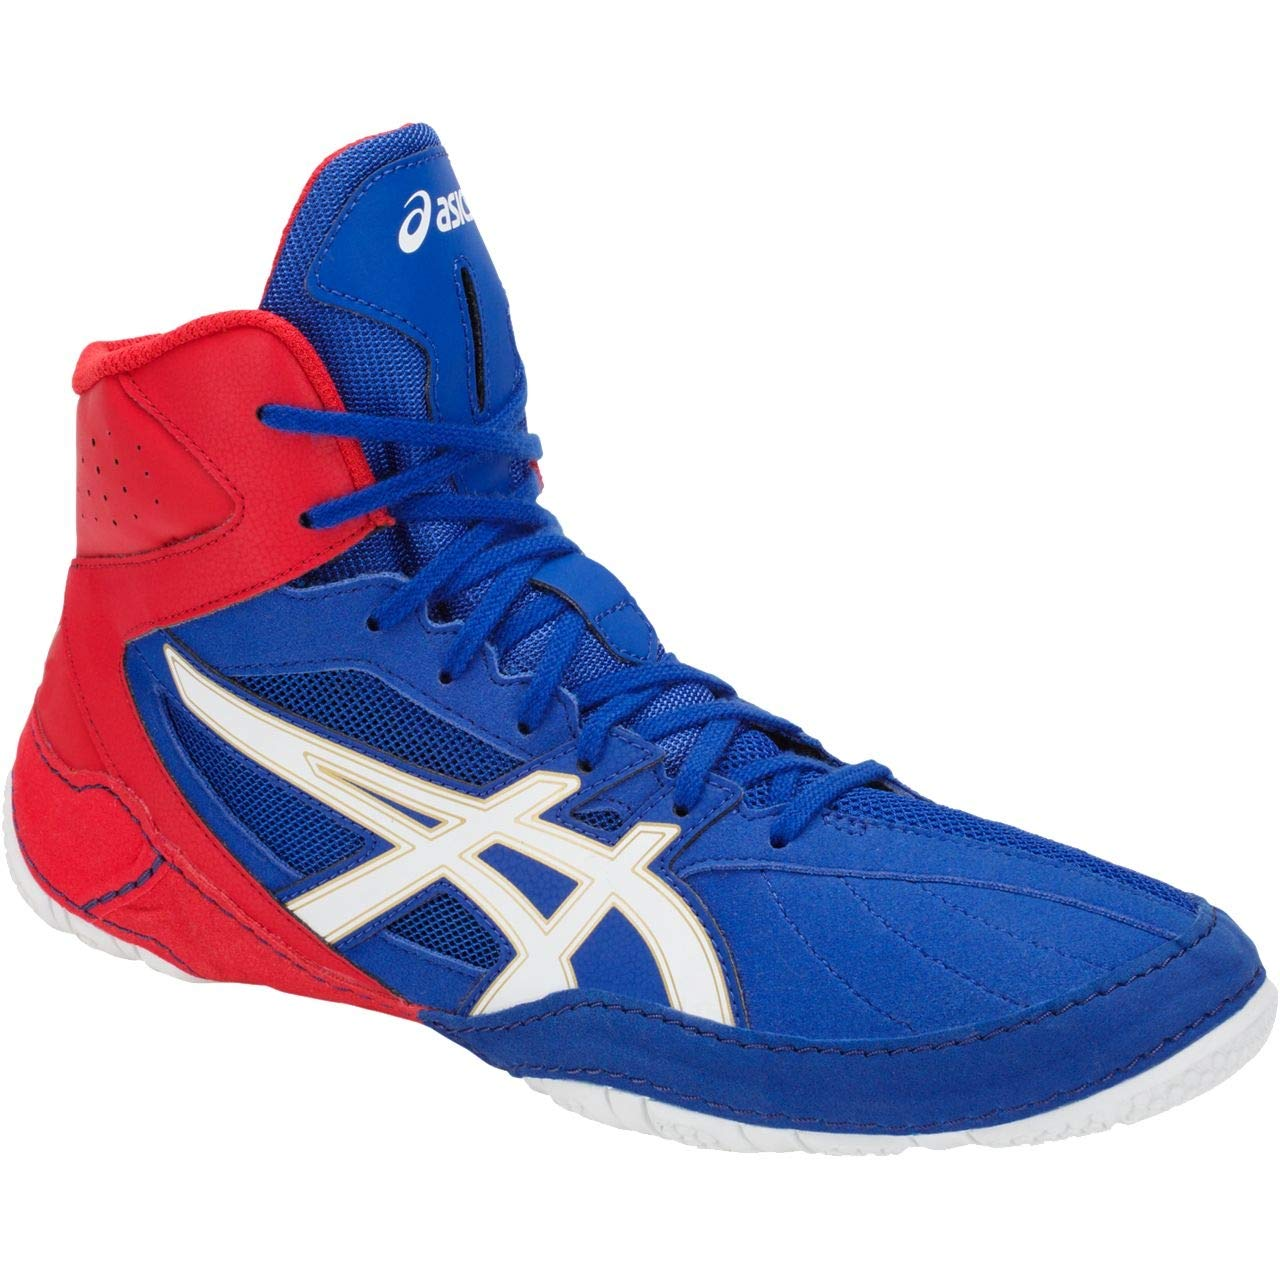 ASICS Matcontrol Shoe Men's Wrestling